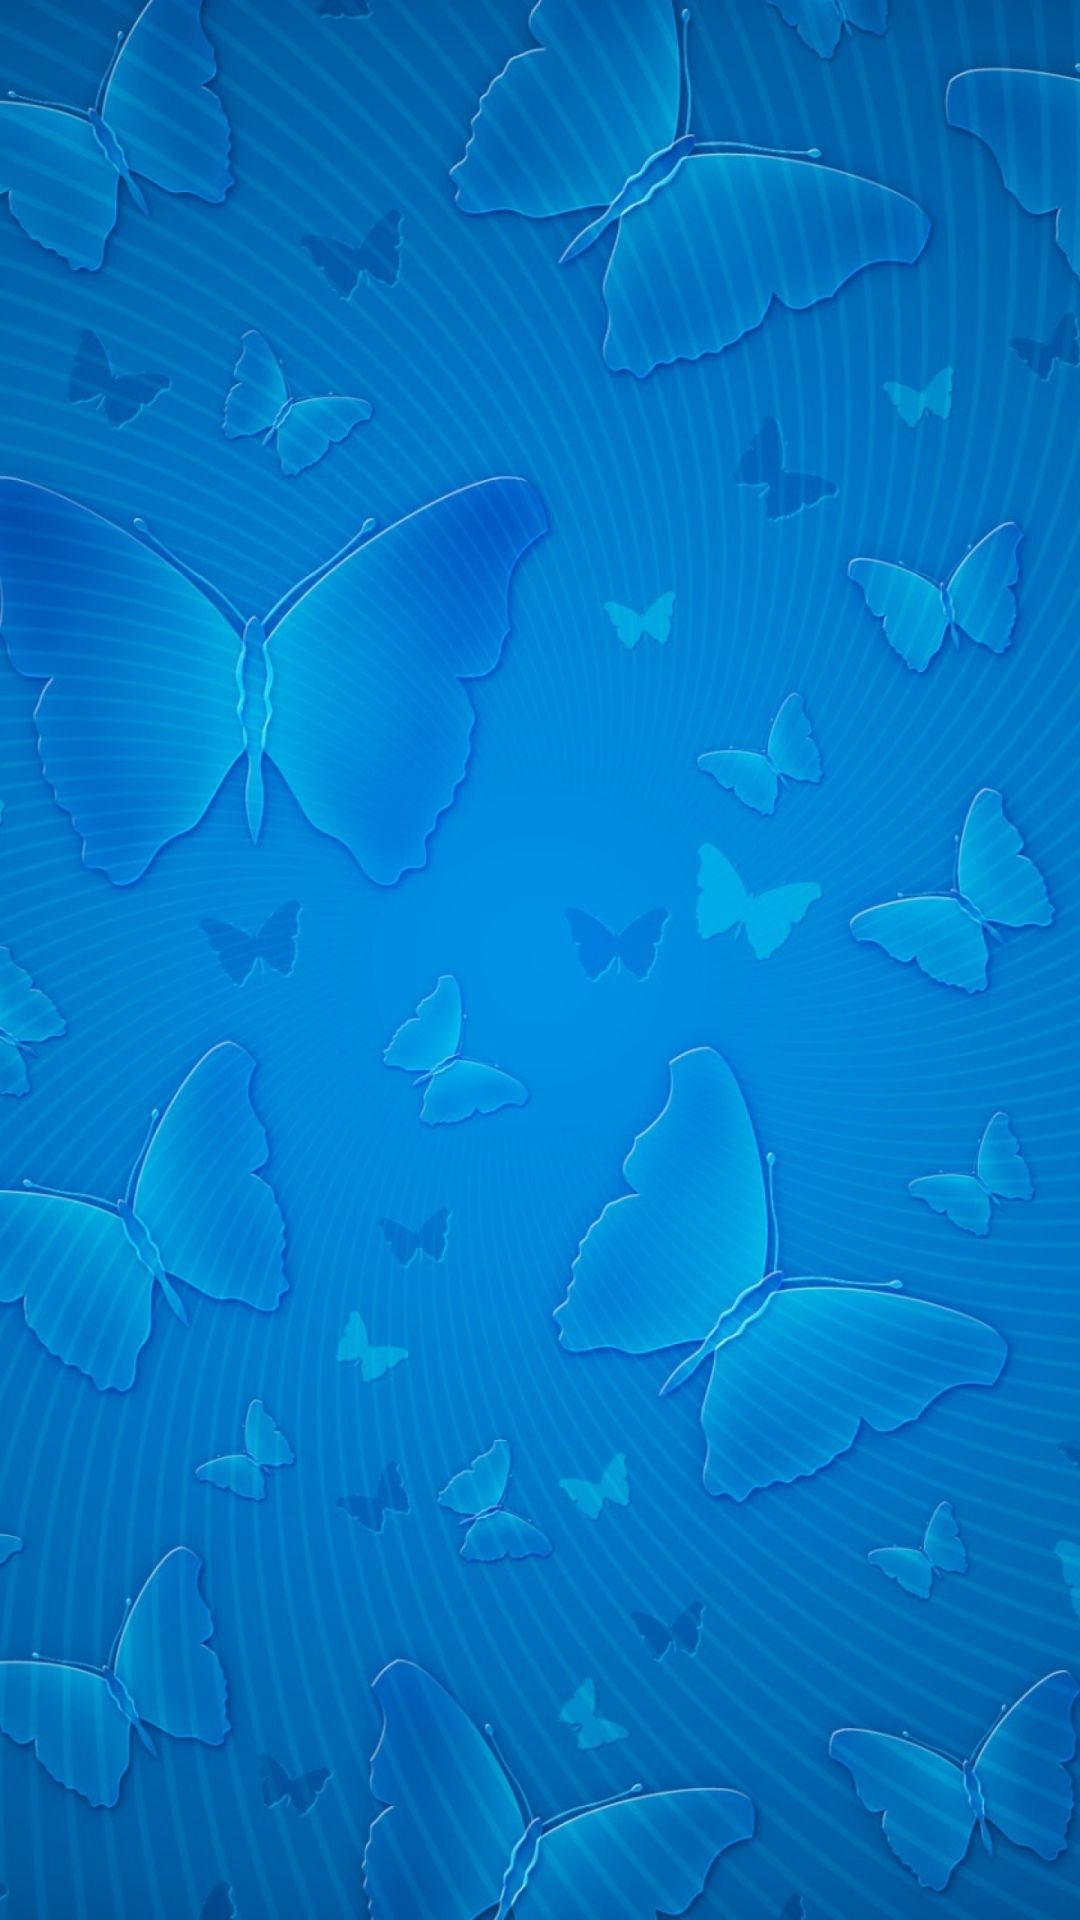 Butterfly live wallpaper iPhone